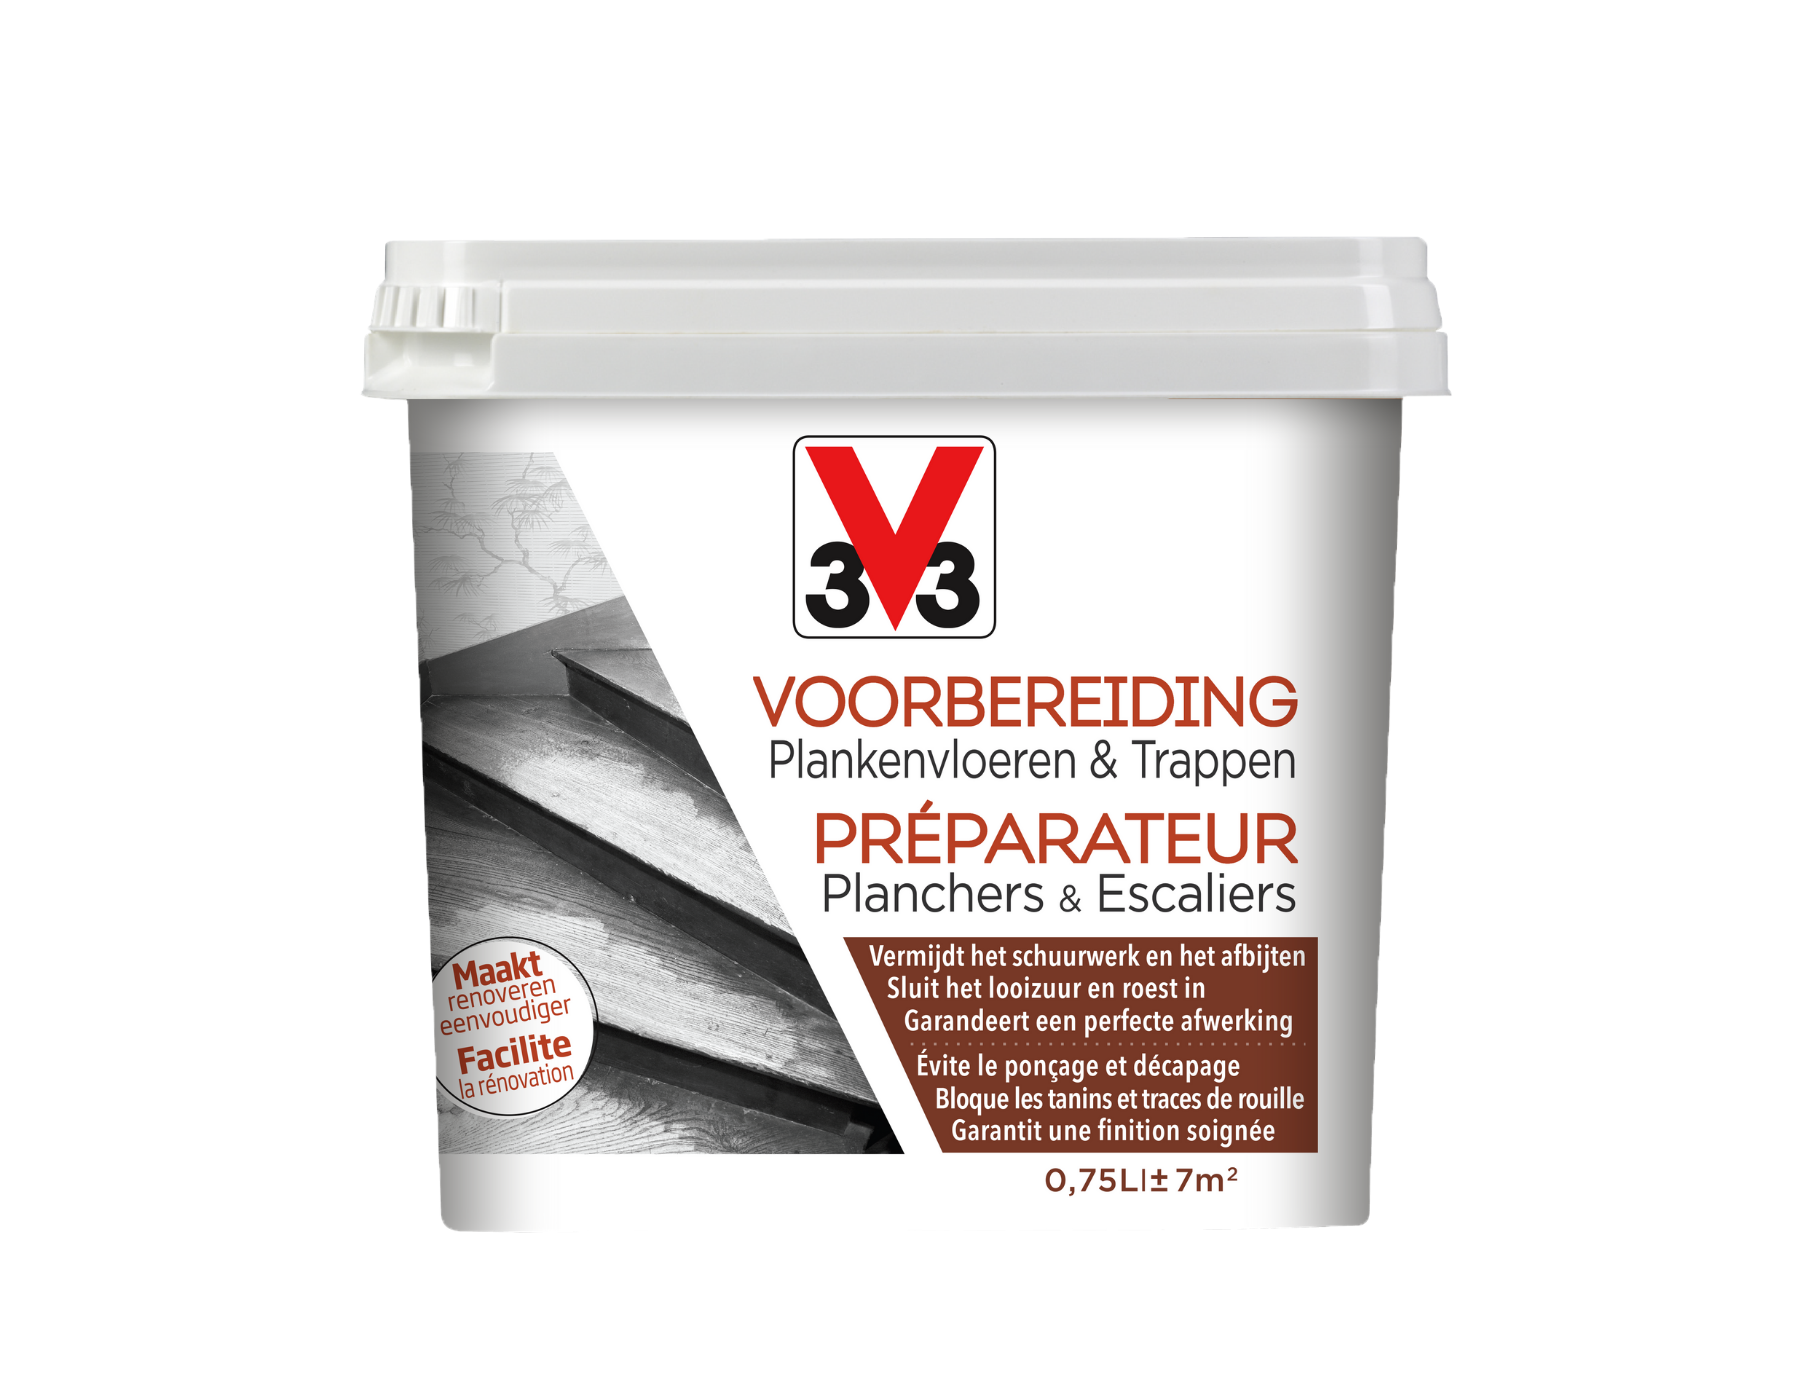 perfection-v33-preparateur